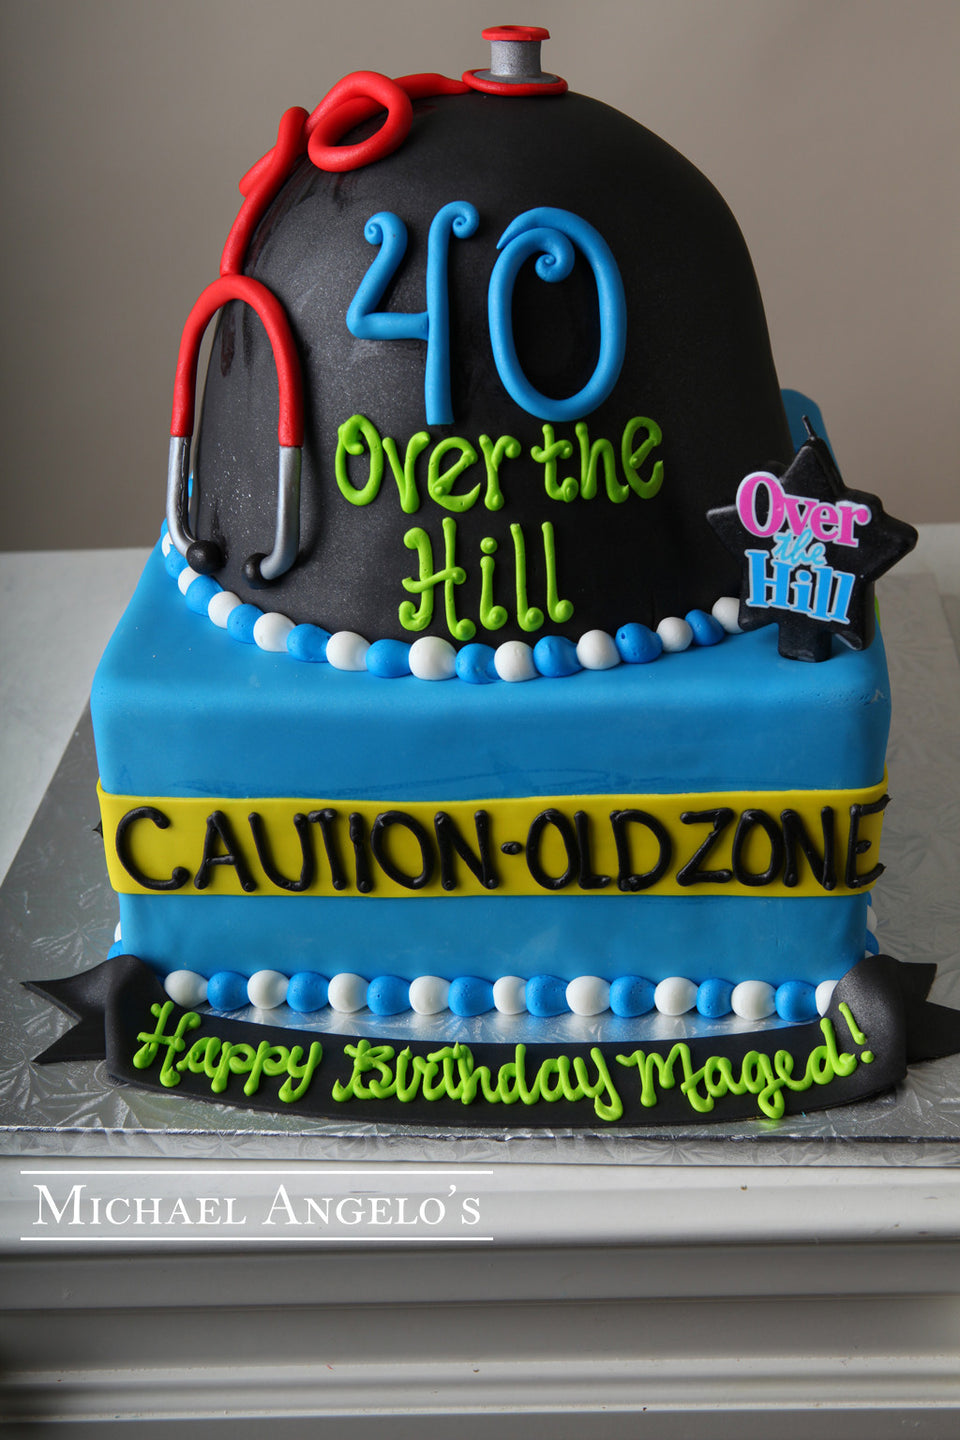 Old Zone #76Milestones